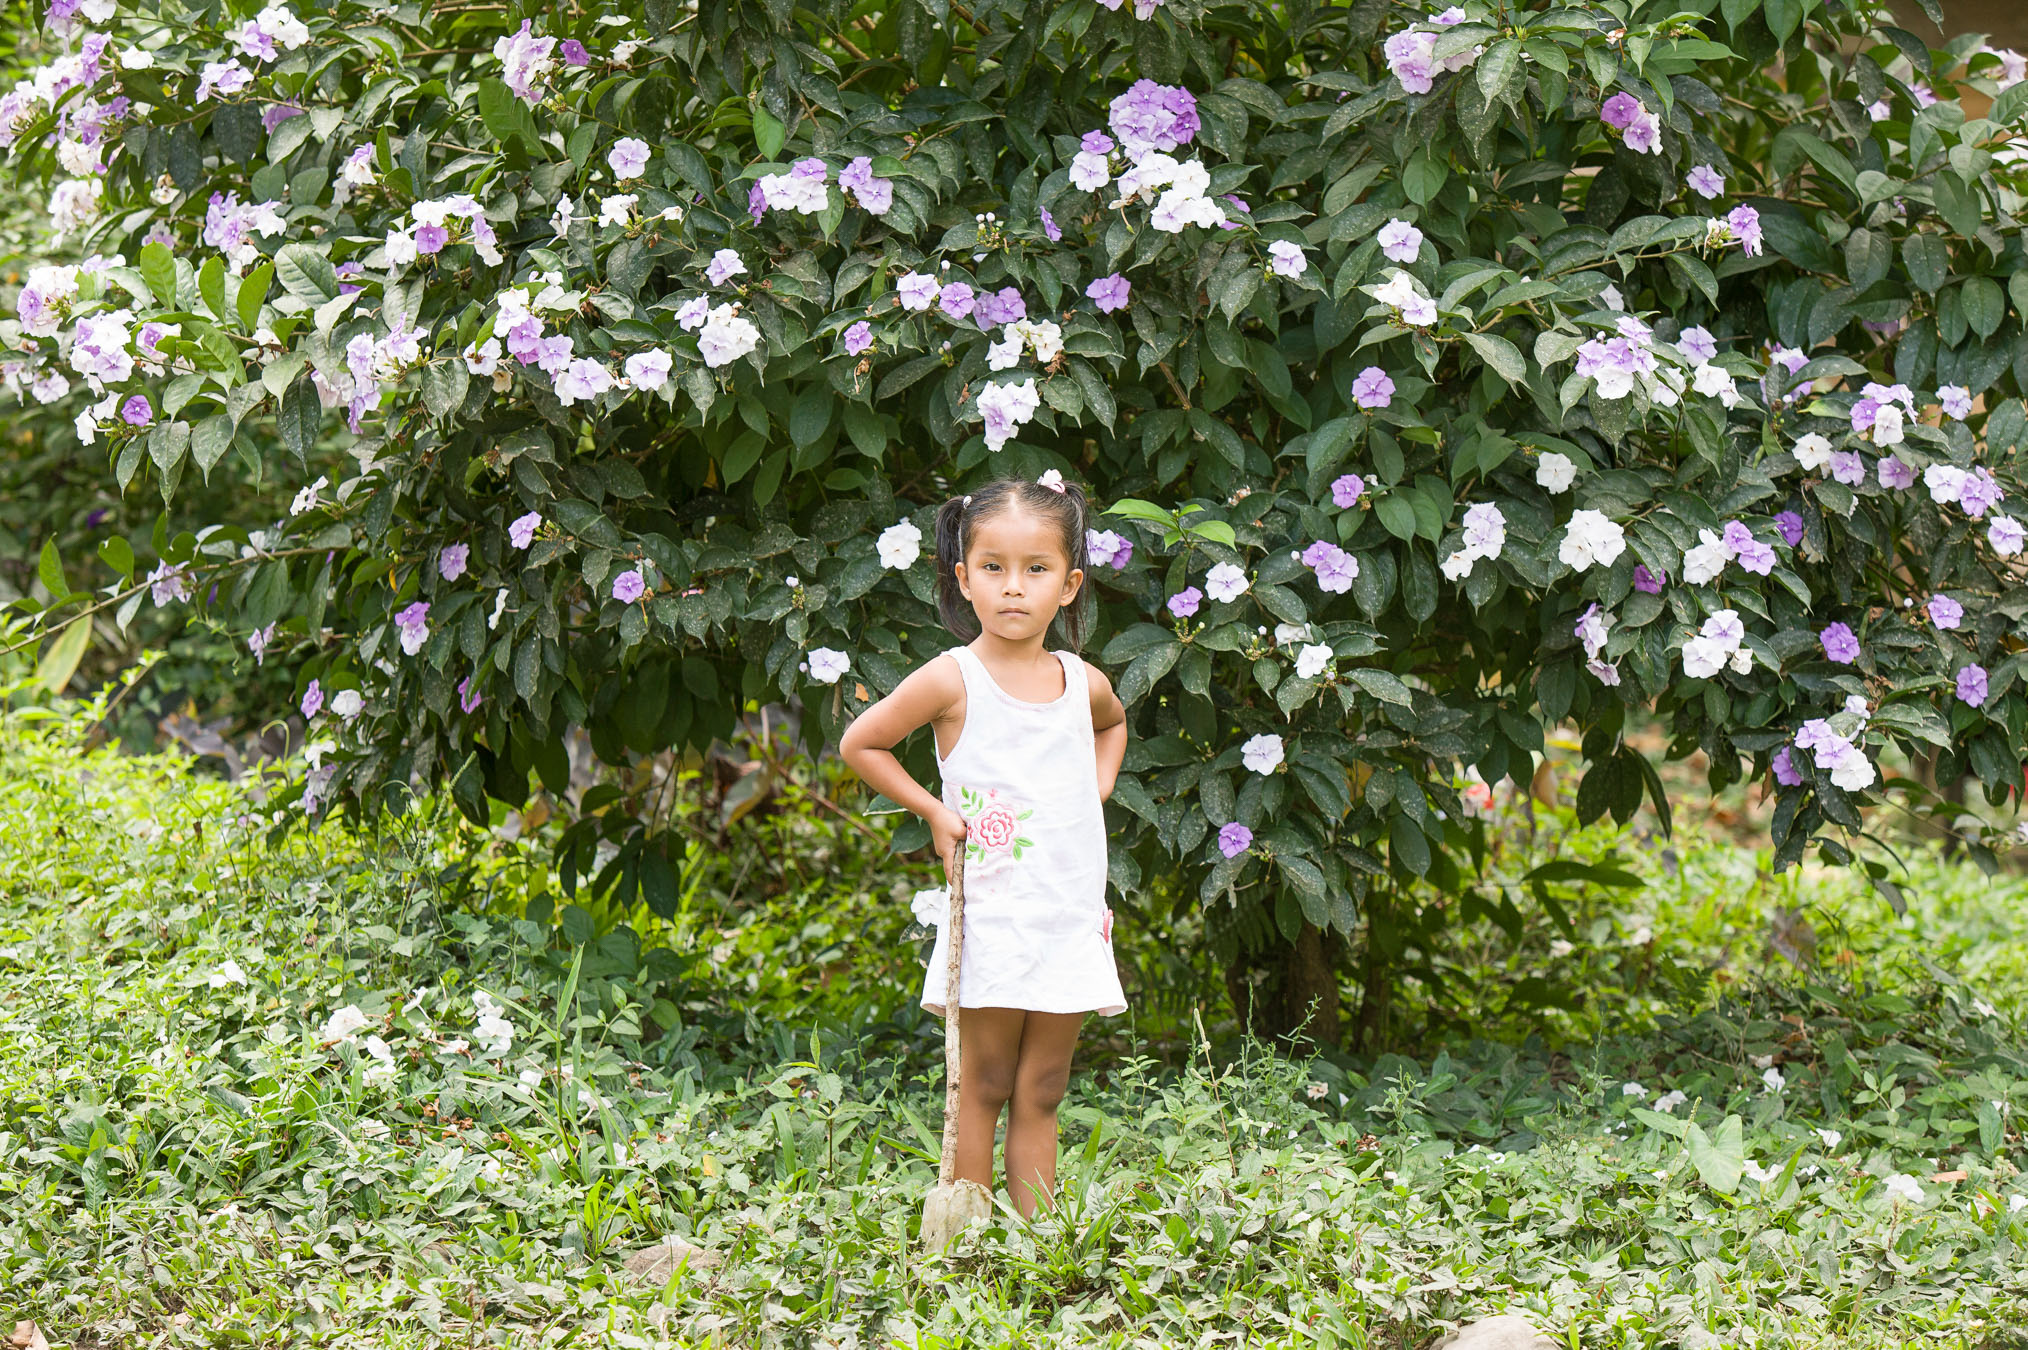 Girl besides flowers, Environmental tax to maintain forests in Costa Rica - If Not Us Then Who?